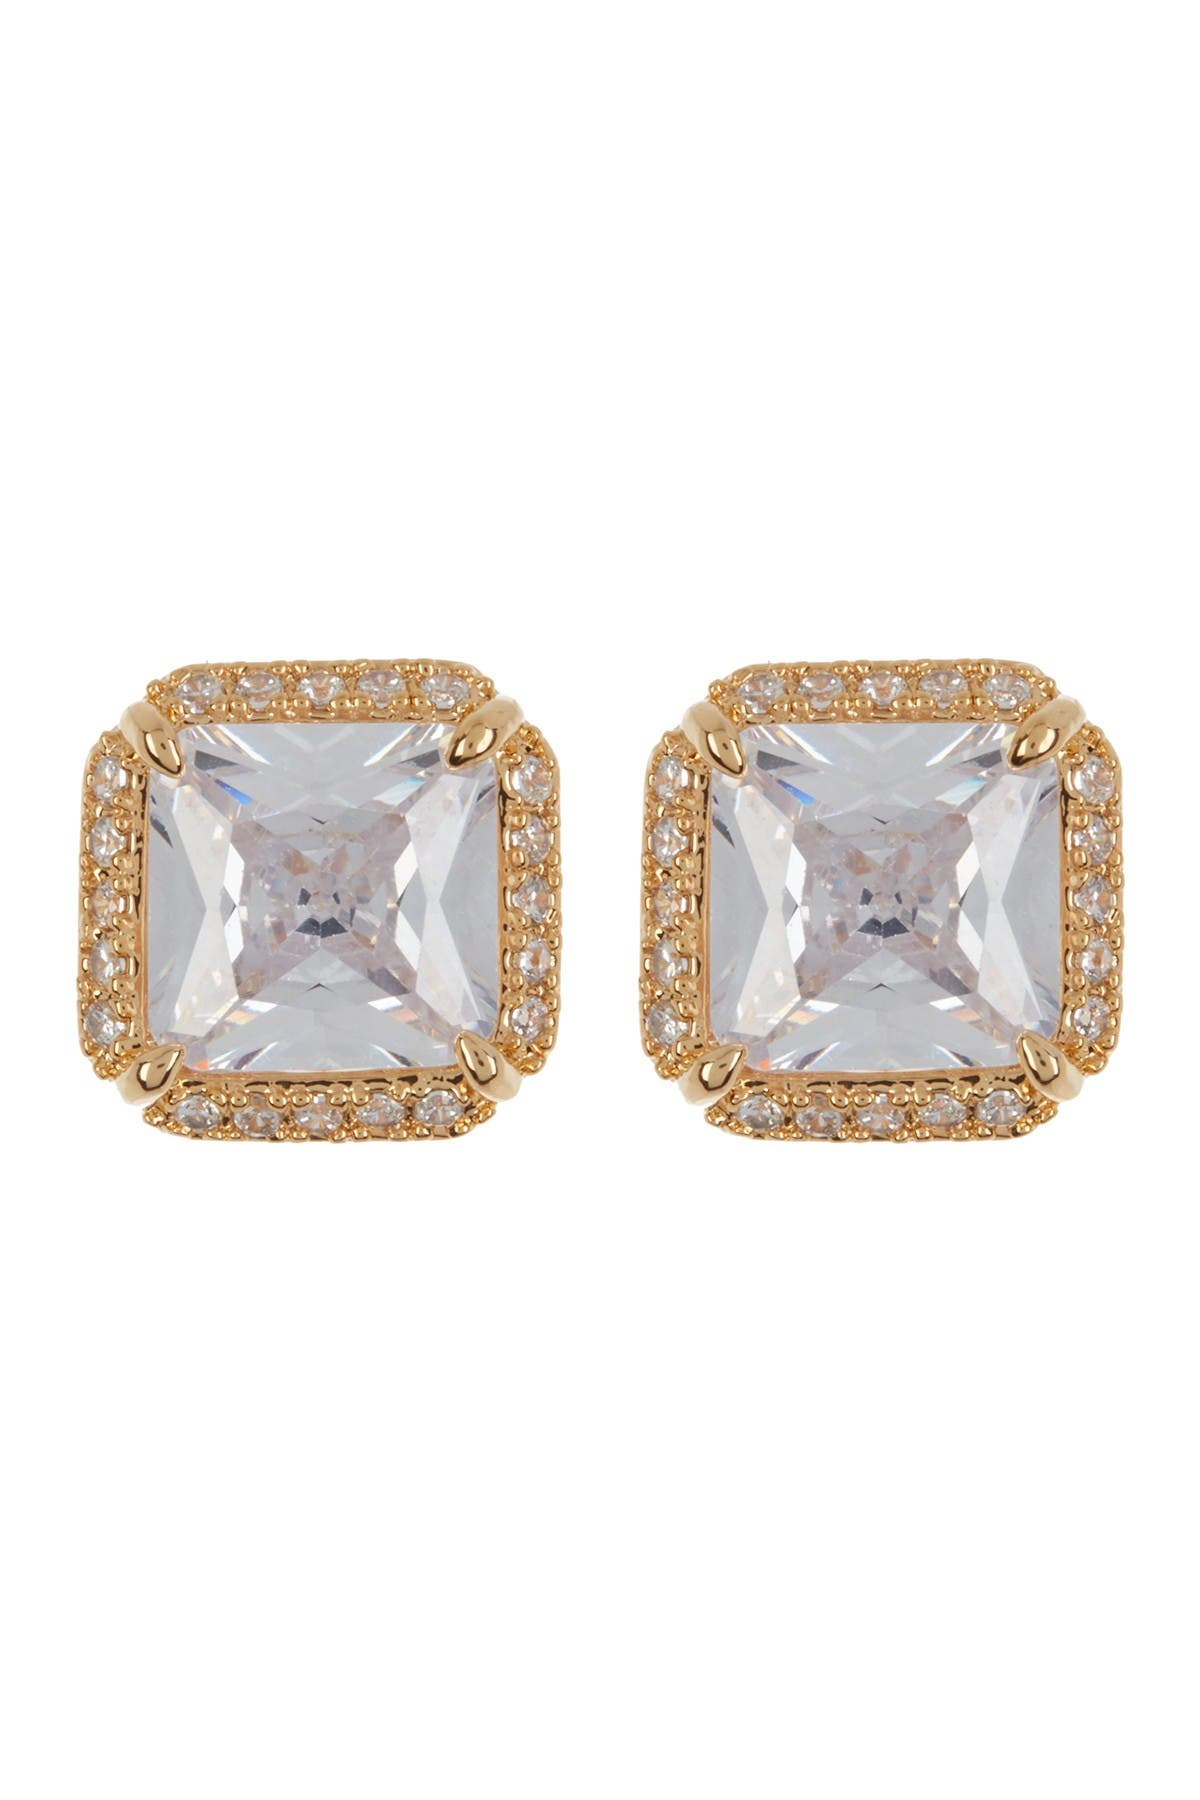 Image of kate spade new york that sparkle pave princess cut cz stud earrings